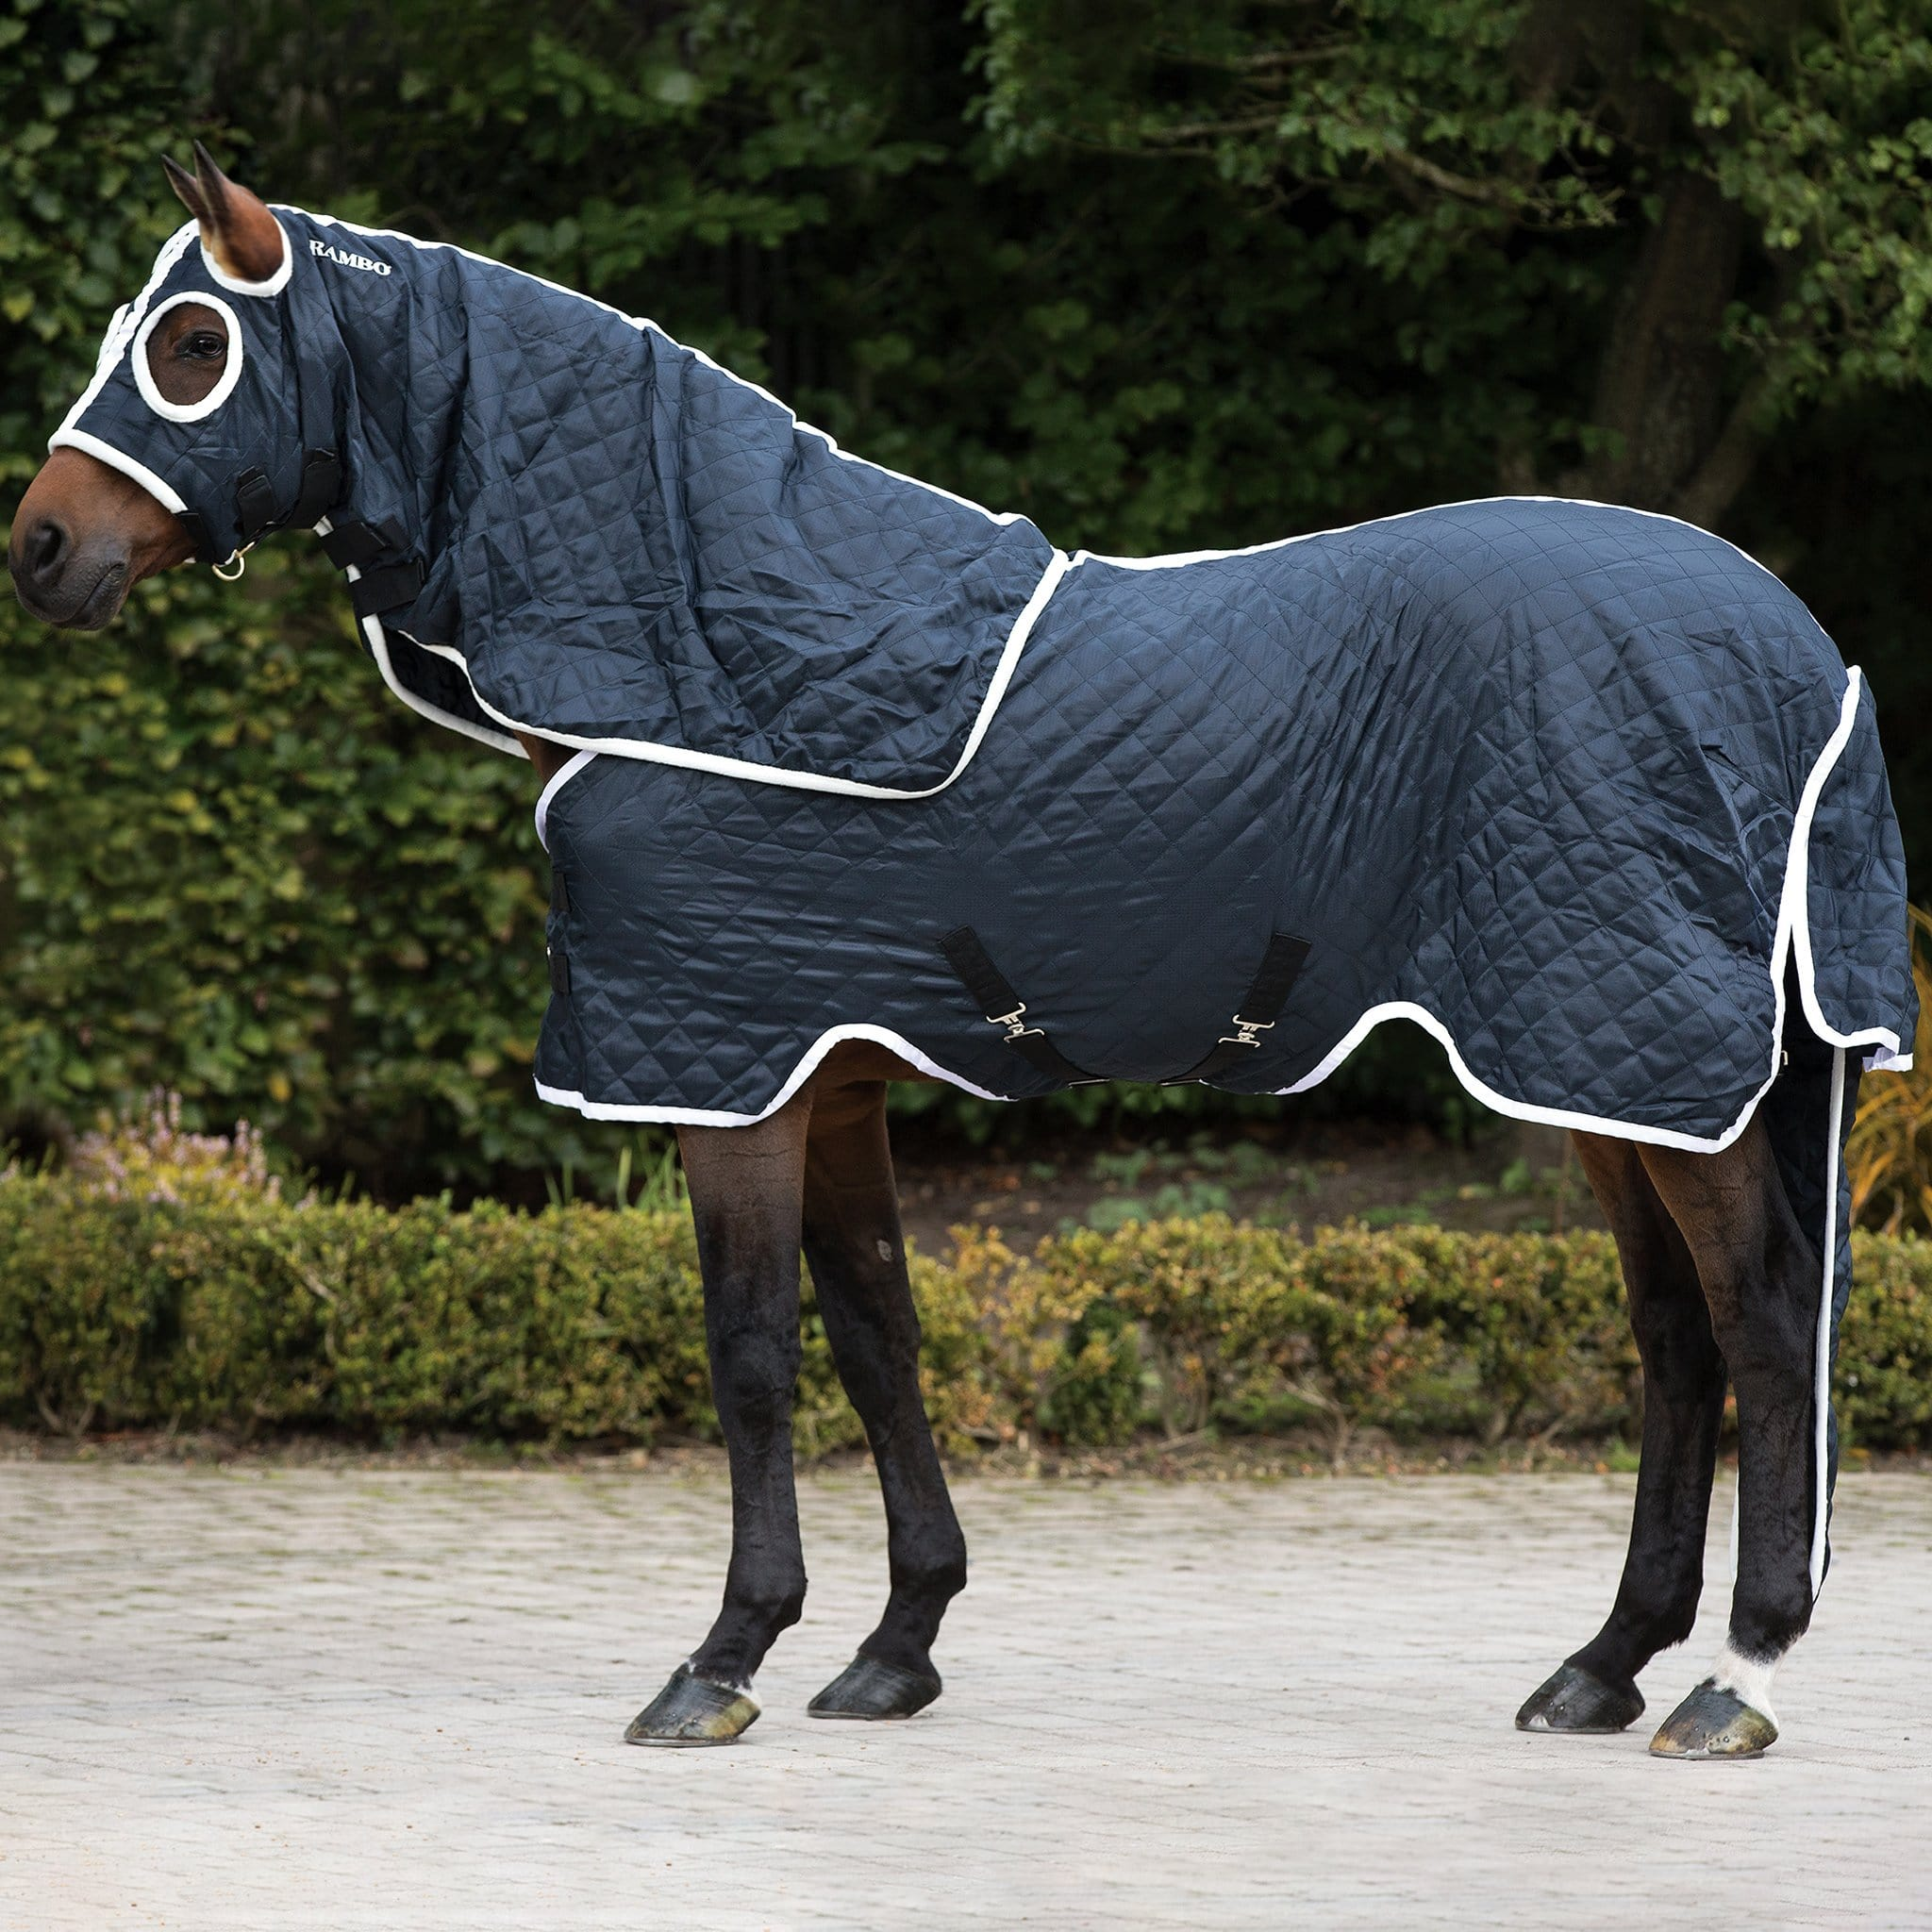 Rambo Show Set Lightweight 100g Detachable Neck Stable Rug On Horse Side View ACAU81.